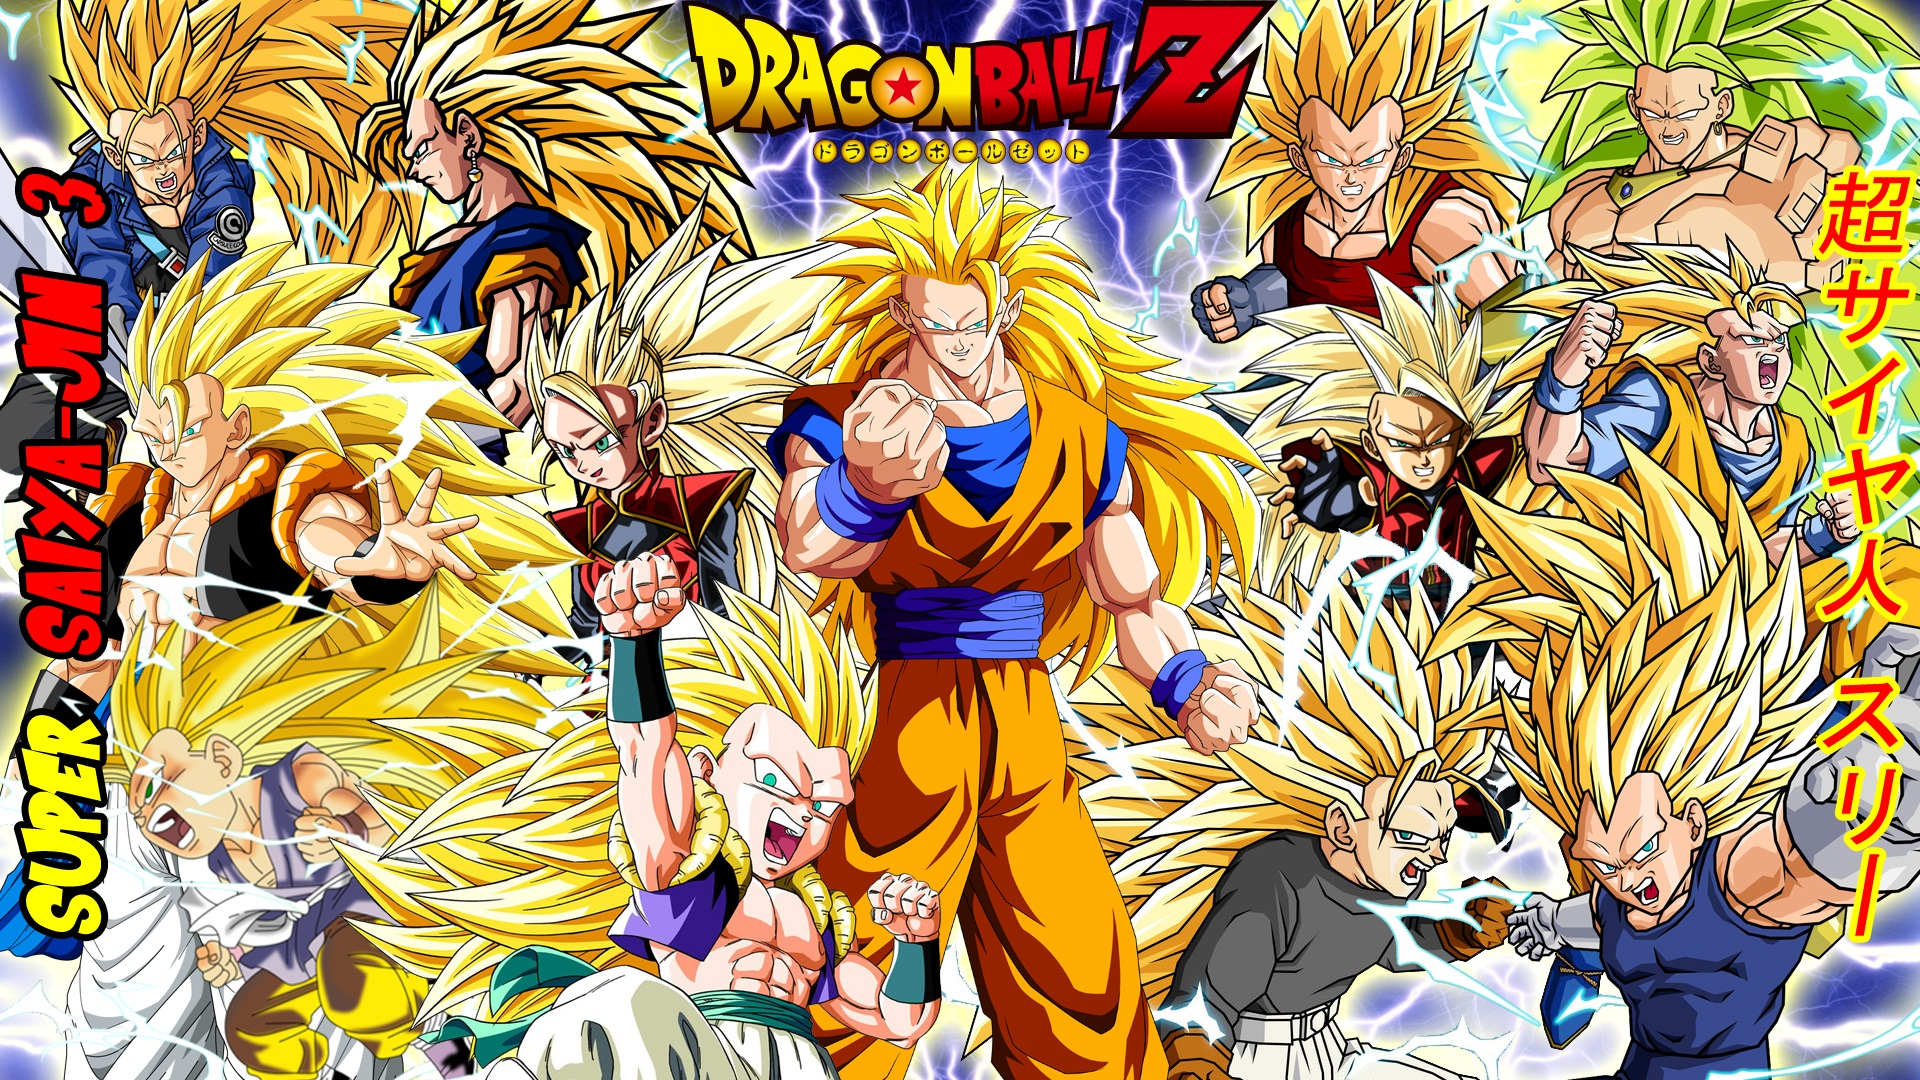 Dragon ball z super saiyajin 3 fond d 39 cran hd arri re for Fond ecran dbz